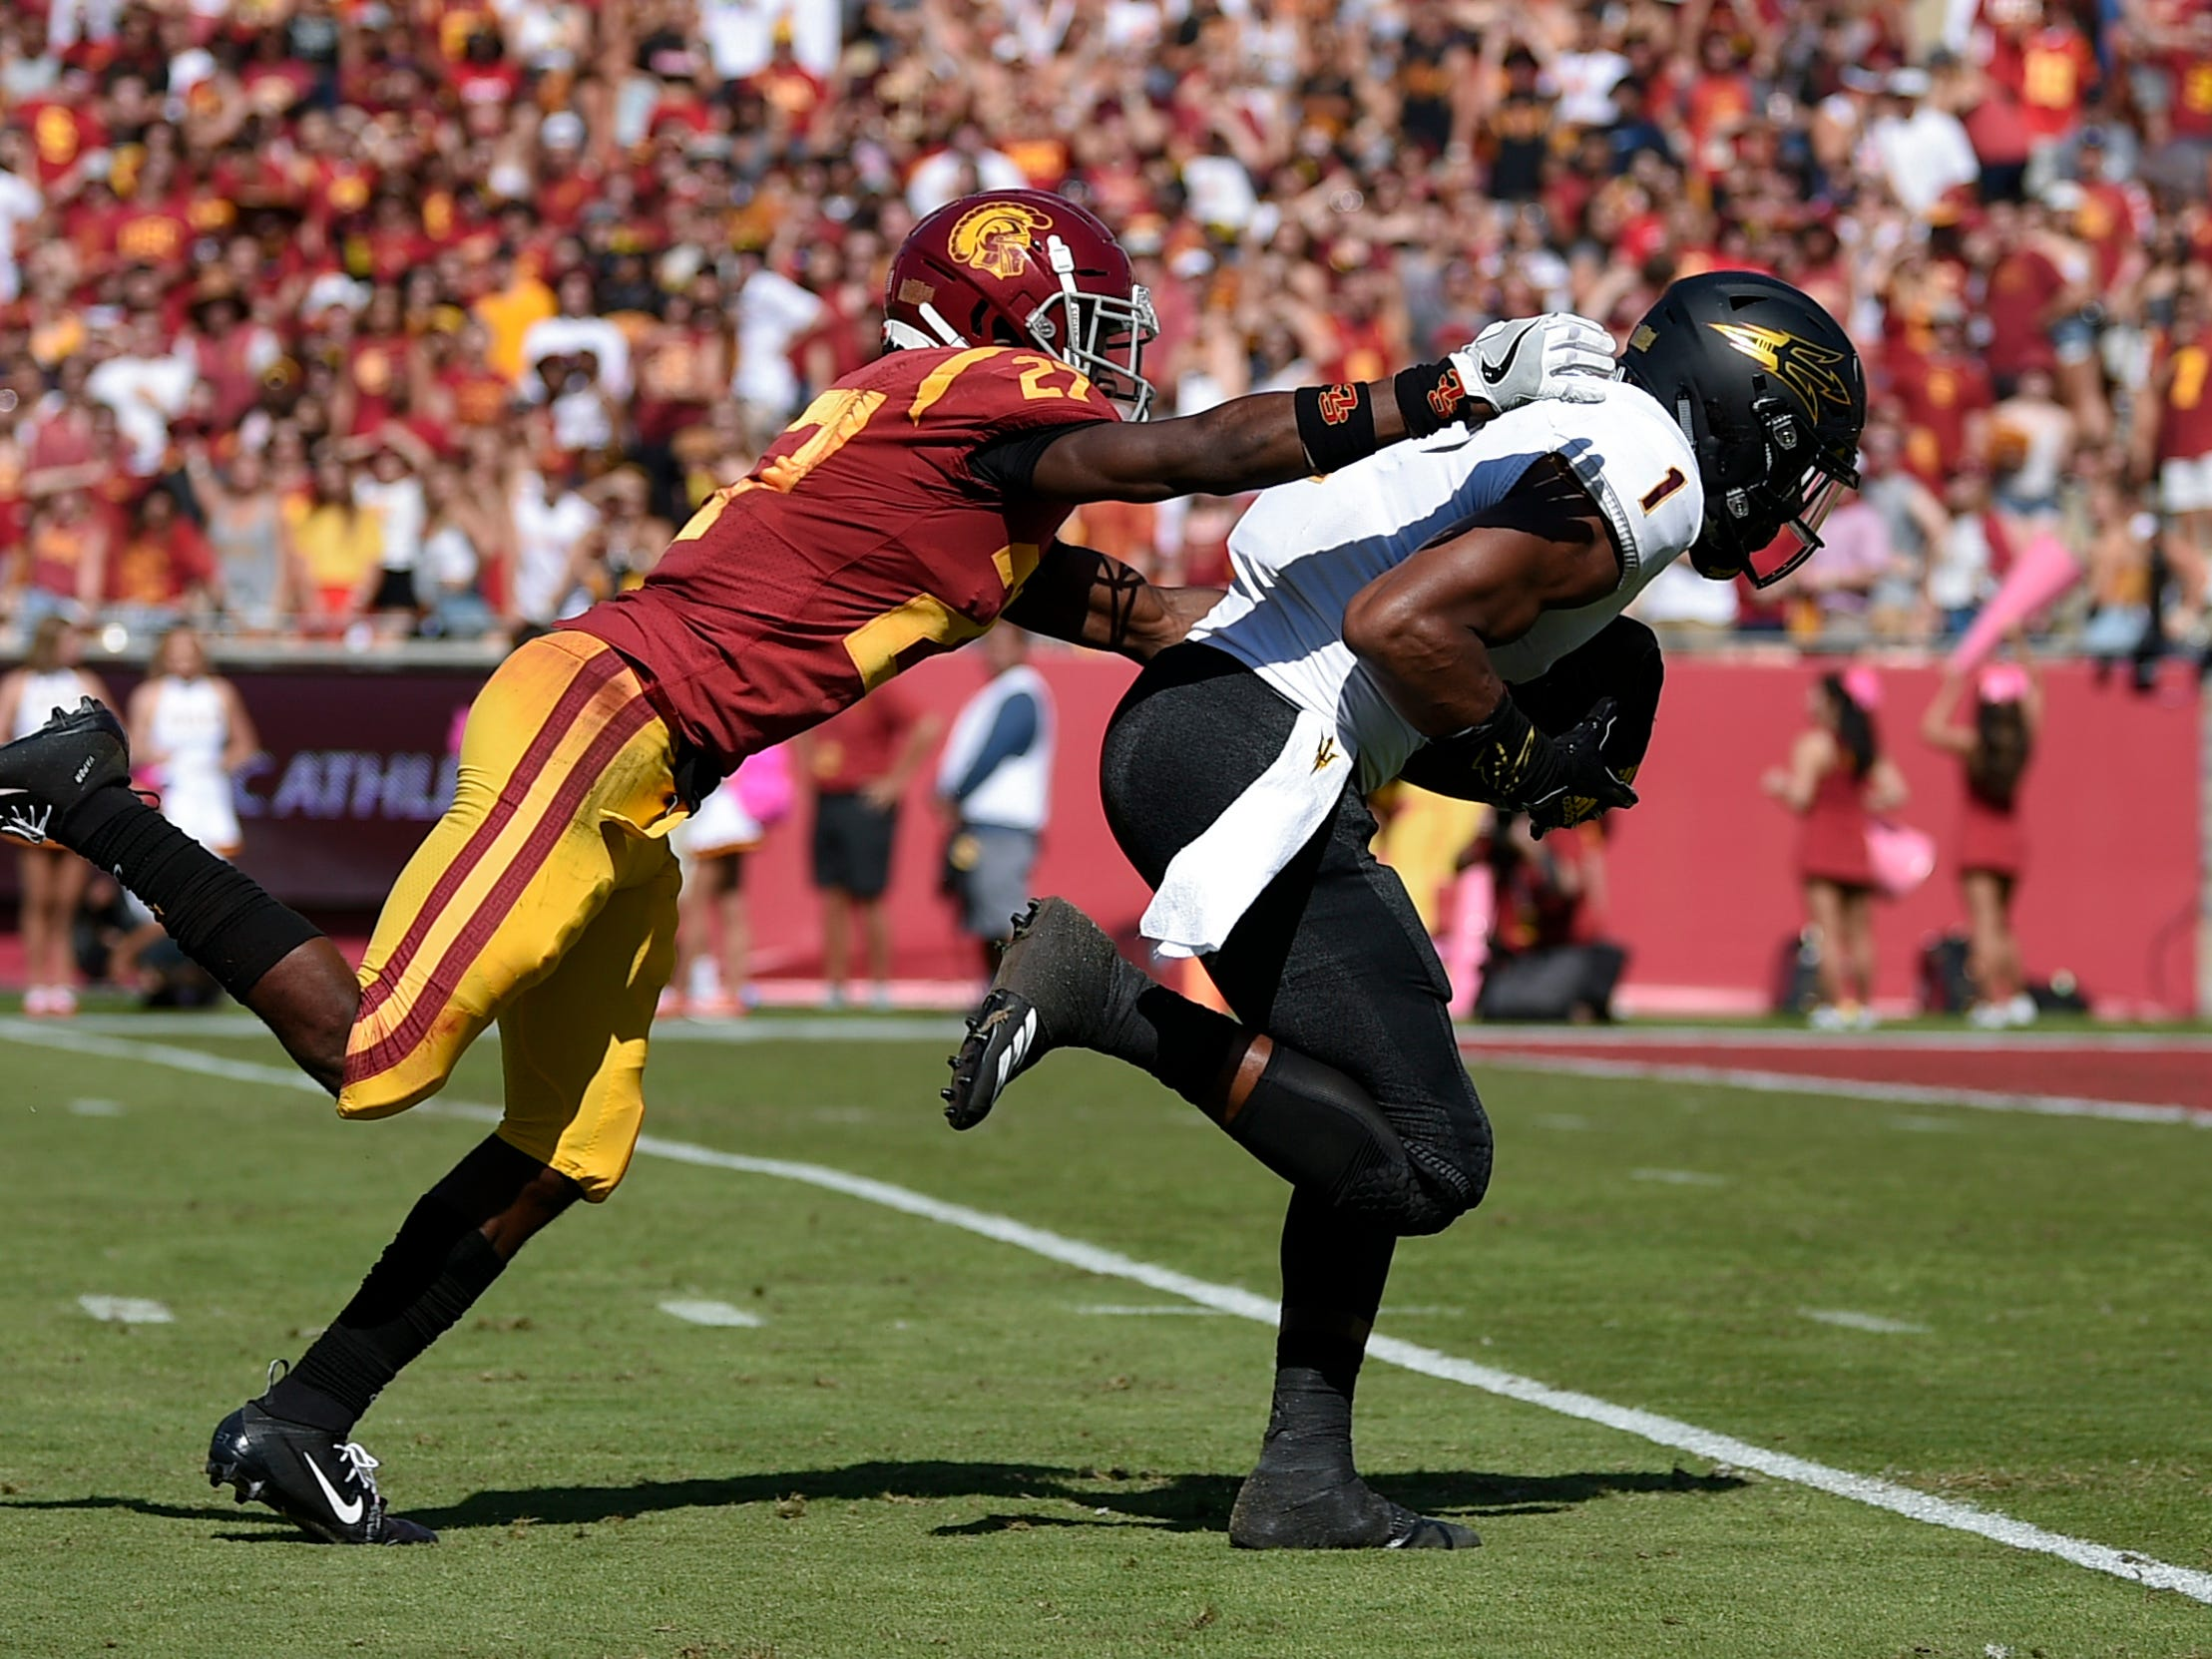 Oct 27, 2018; Los Angeles, CA, USA; Arizona State Sun Devils wide receiver N'Keal Harry (1) catches a pass for a touchdown defended by Southern California Trojans corner back Ajene Harris (27) during the first half at Los Angeles Memorial Coliseum. Mandatory Credit: Kelvin Kuo-USA TODAY Sports